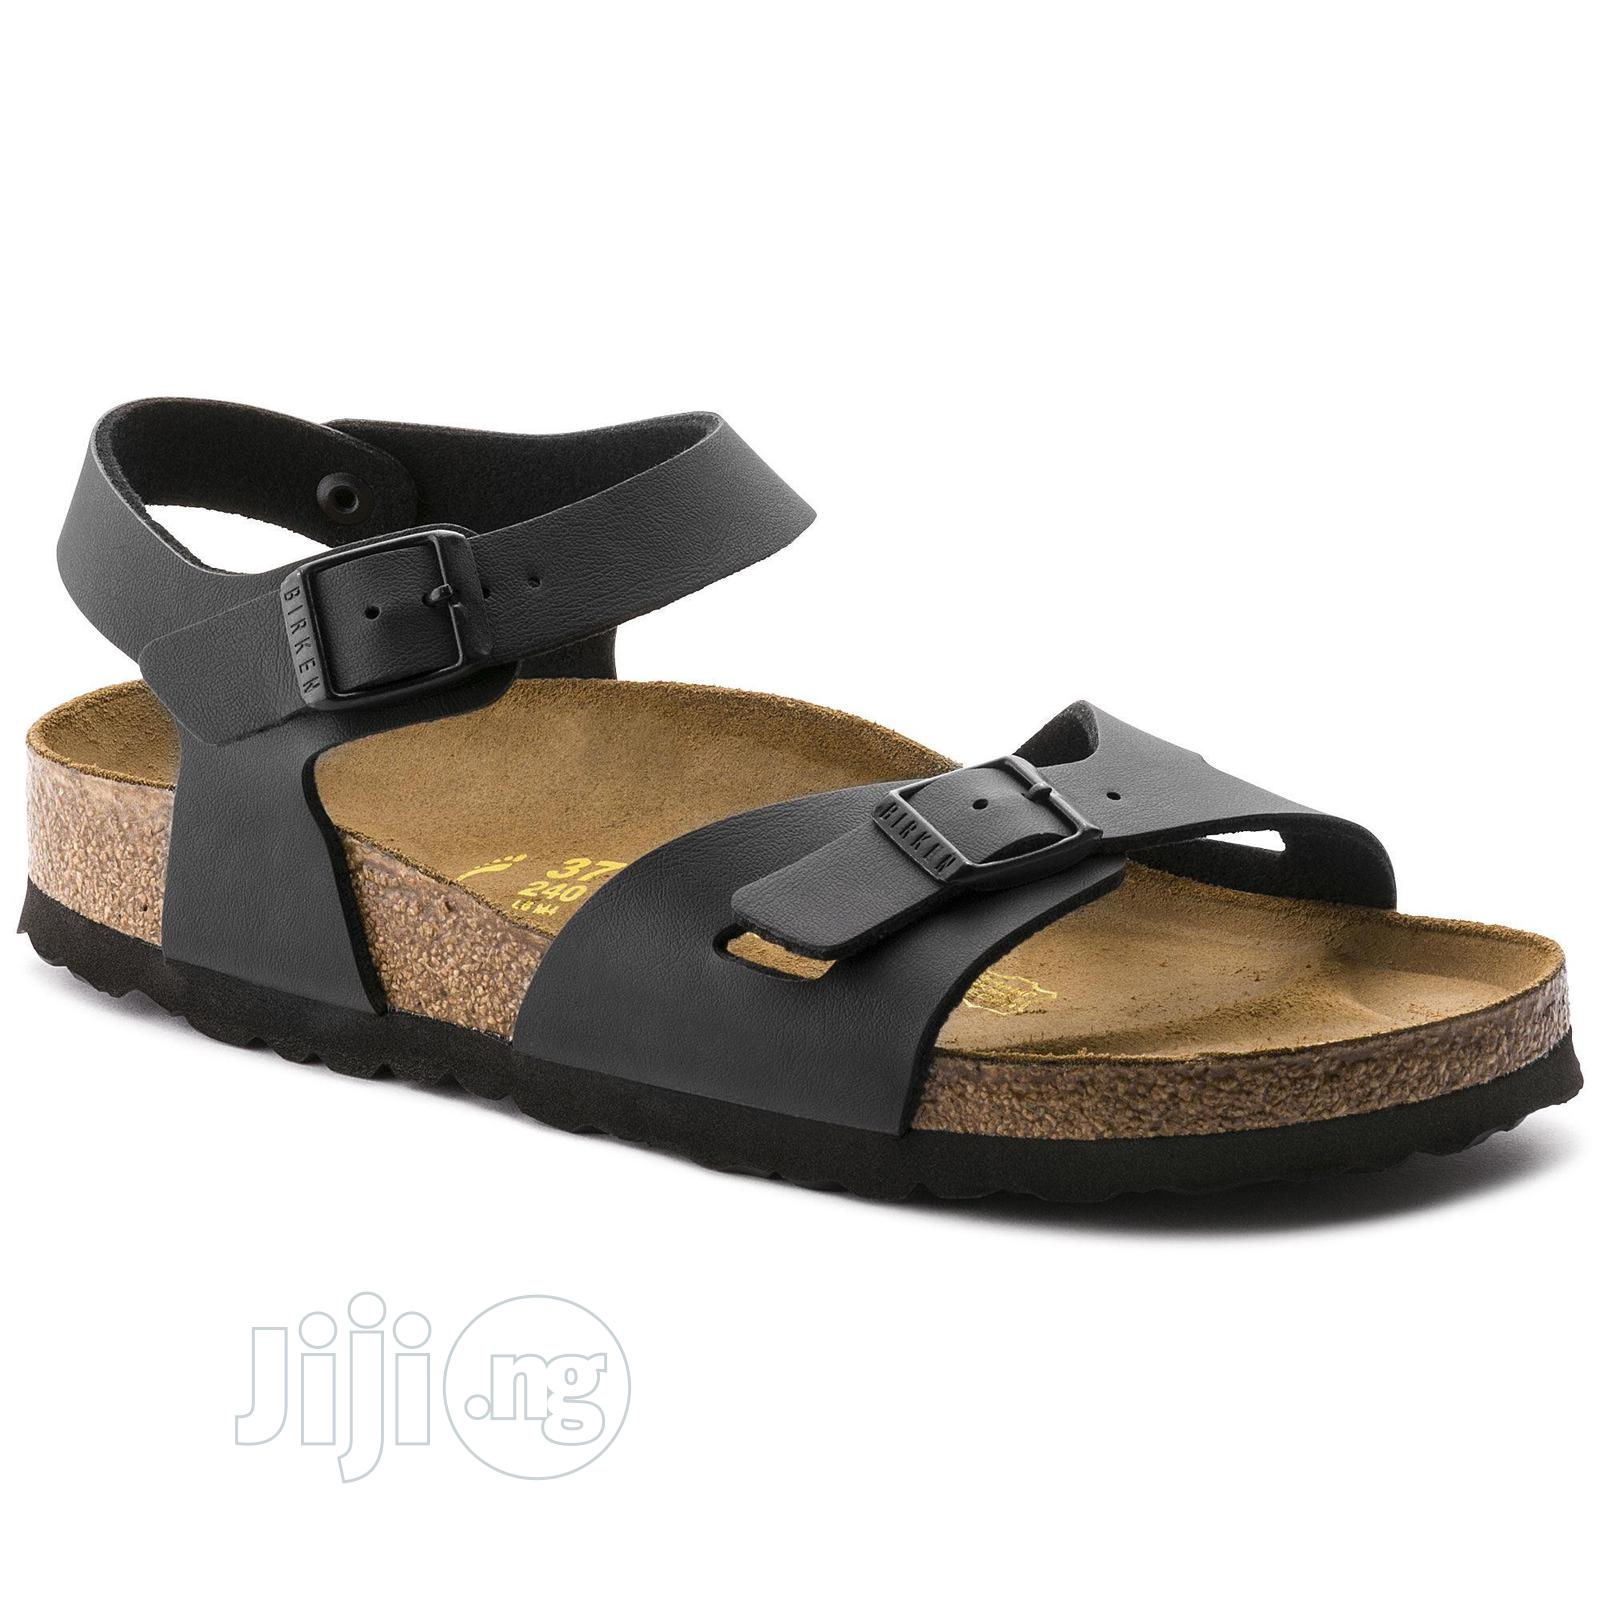 Real Quality Leather Sandals (Berkstocks)